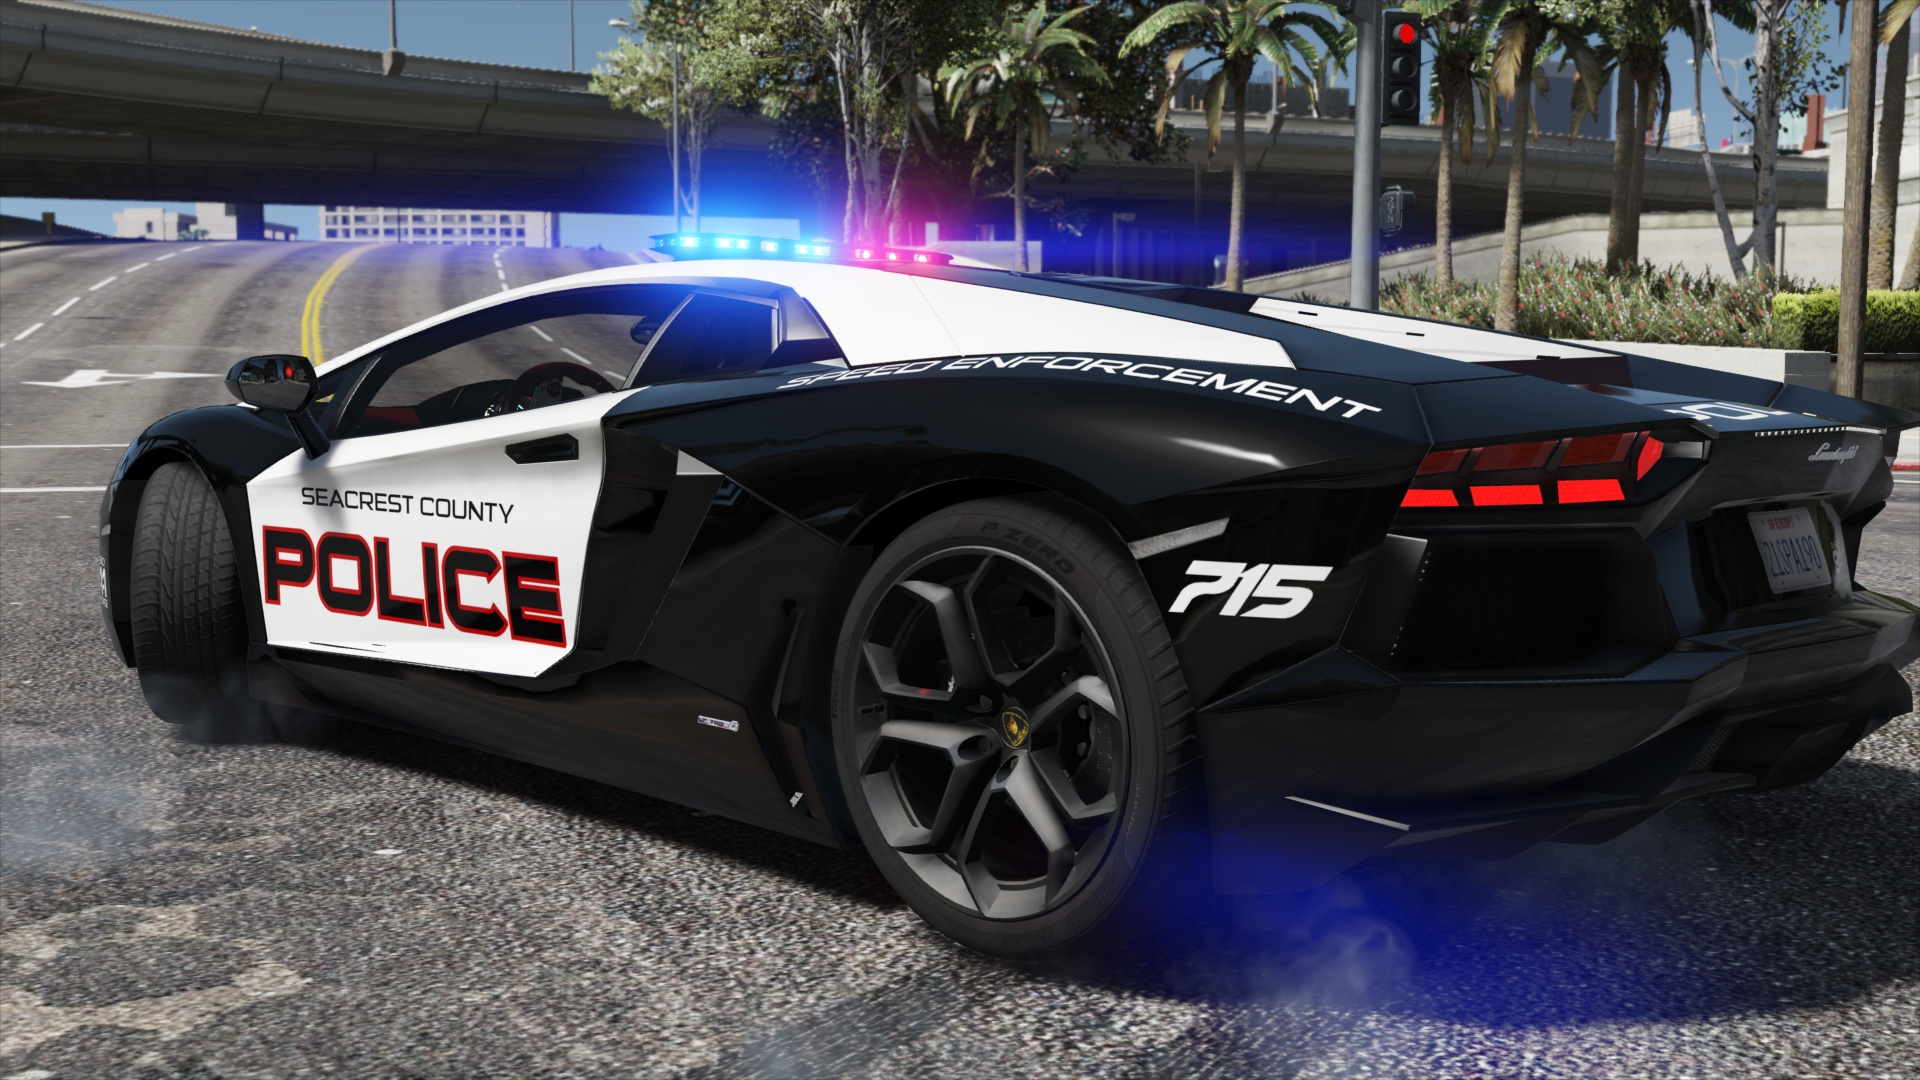 lamborghini aventador hot pursuit police add on replace template gt. Black Bedroom Furniture Sets. Home Design Ideas